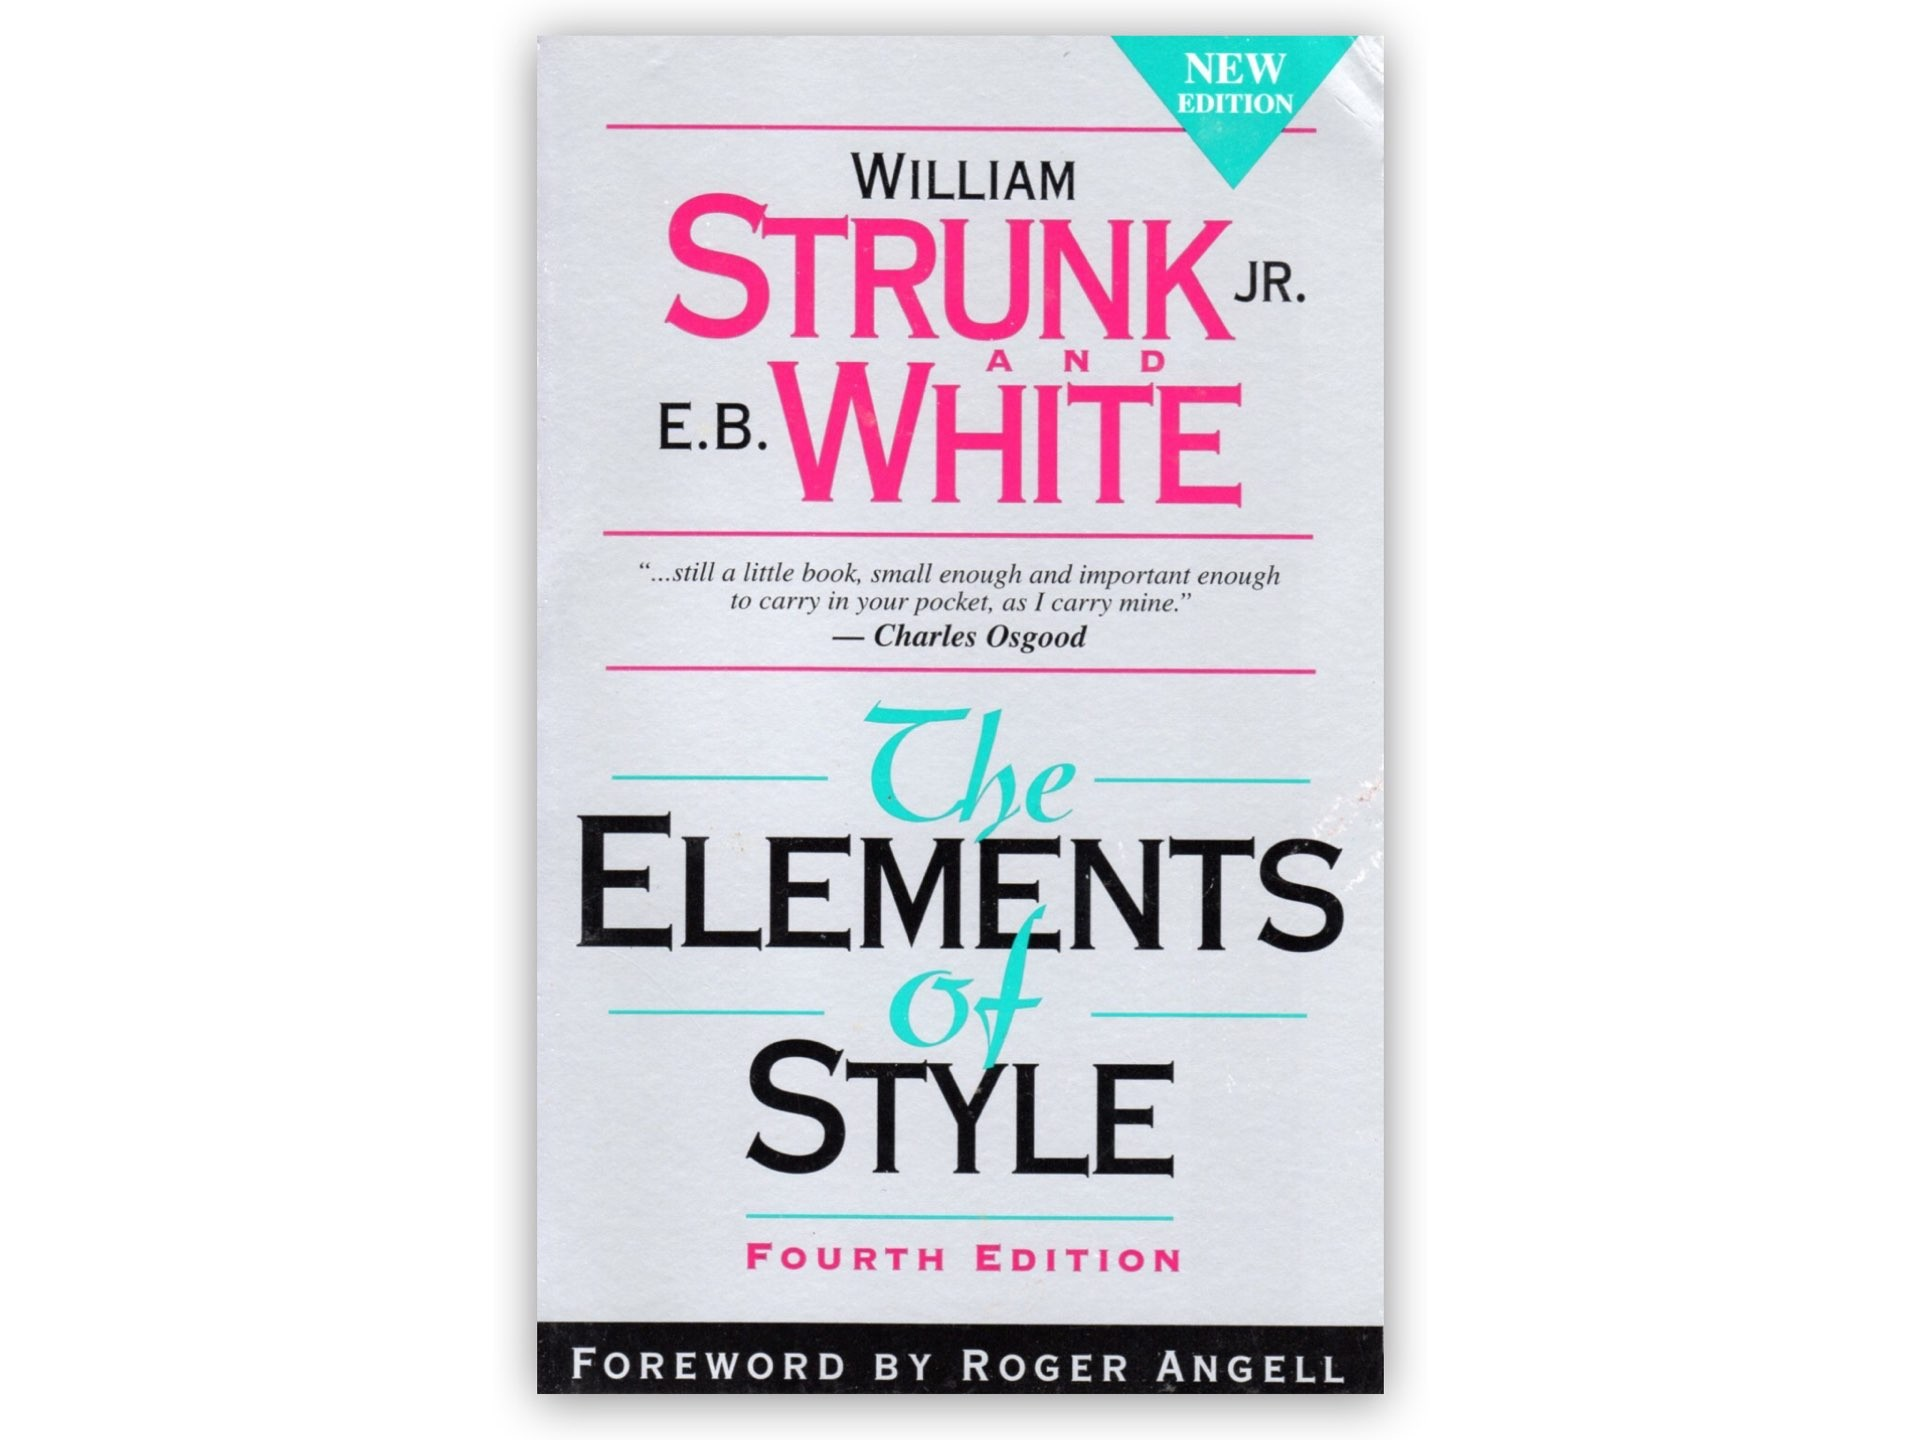 The Elements of Style by William Strunk Jr. and E.B. White.